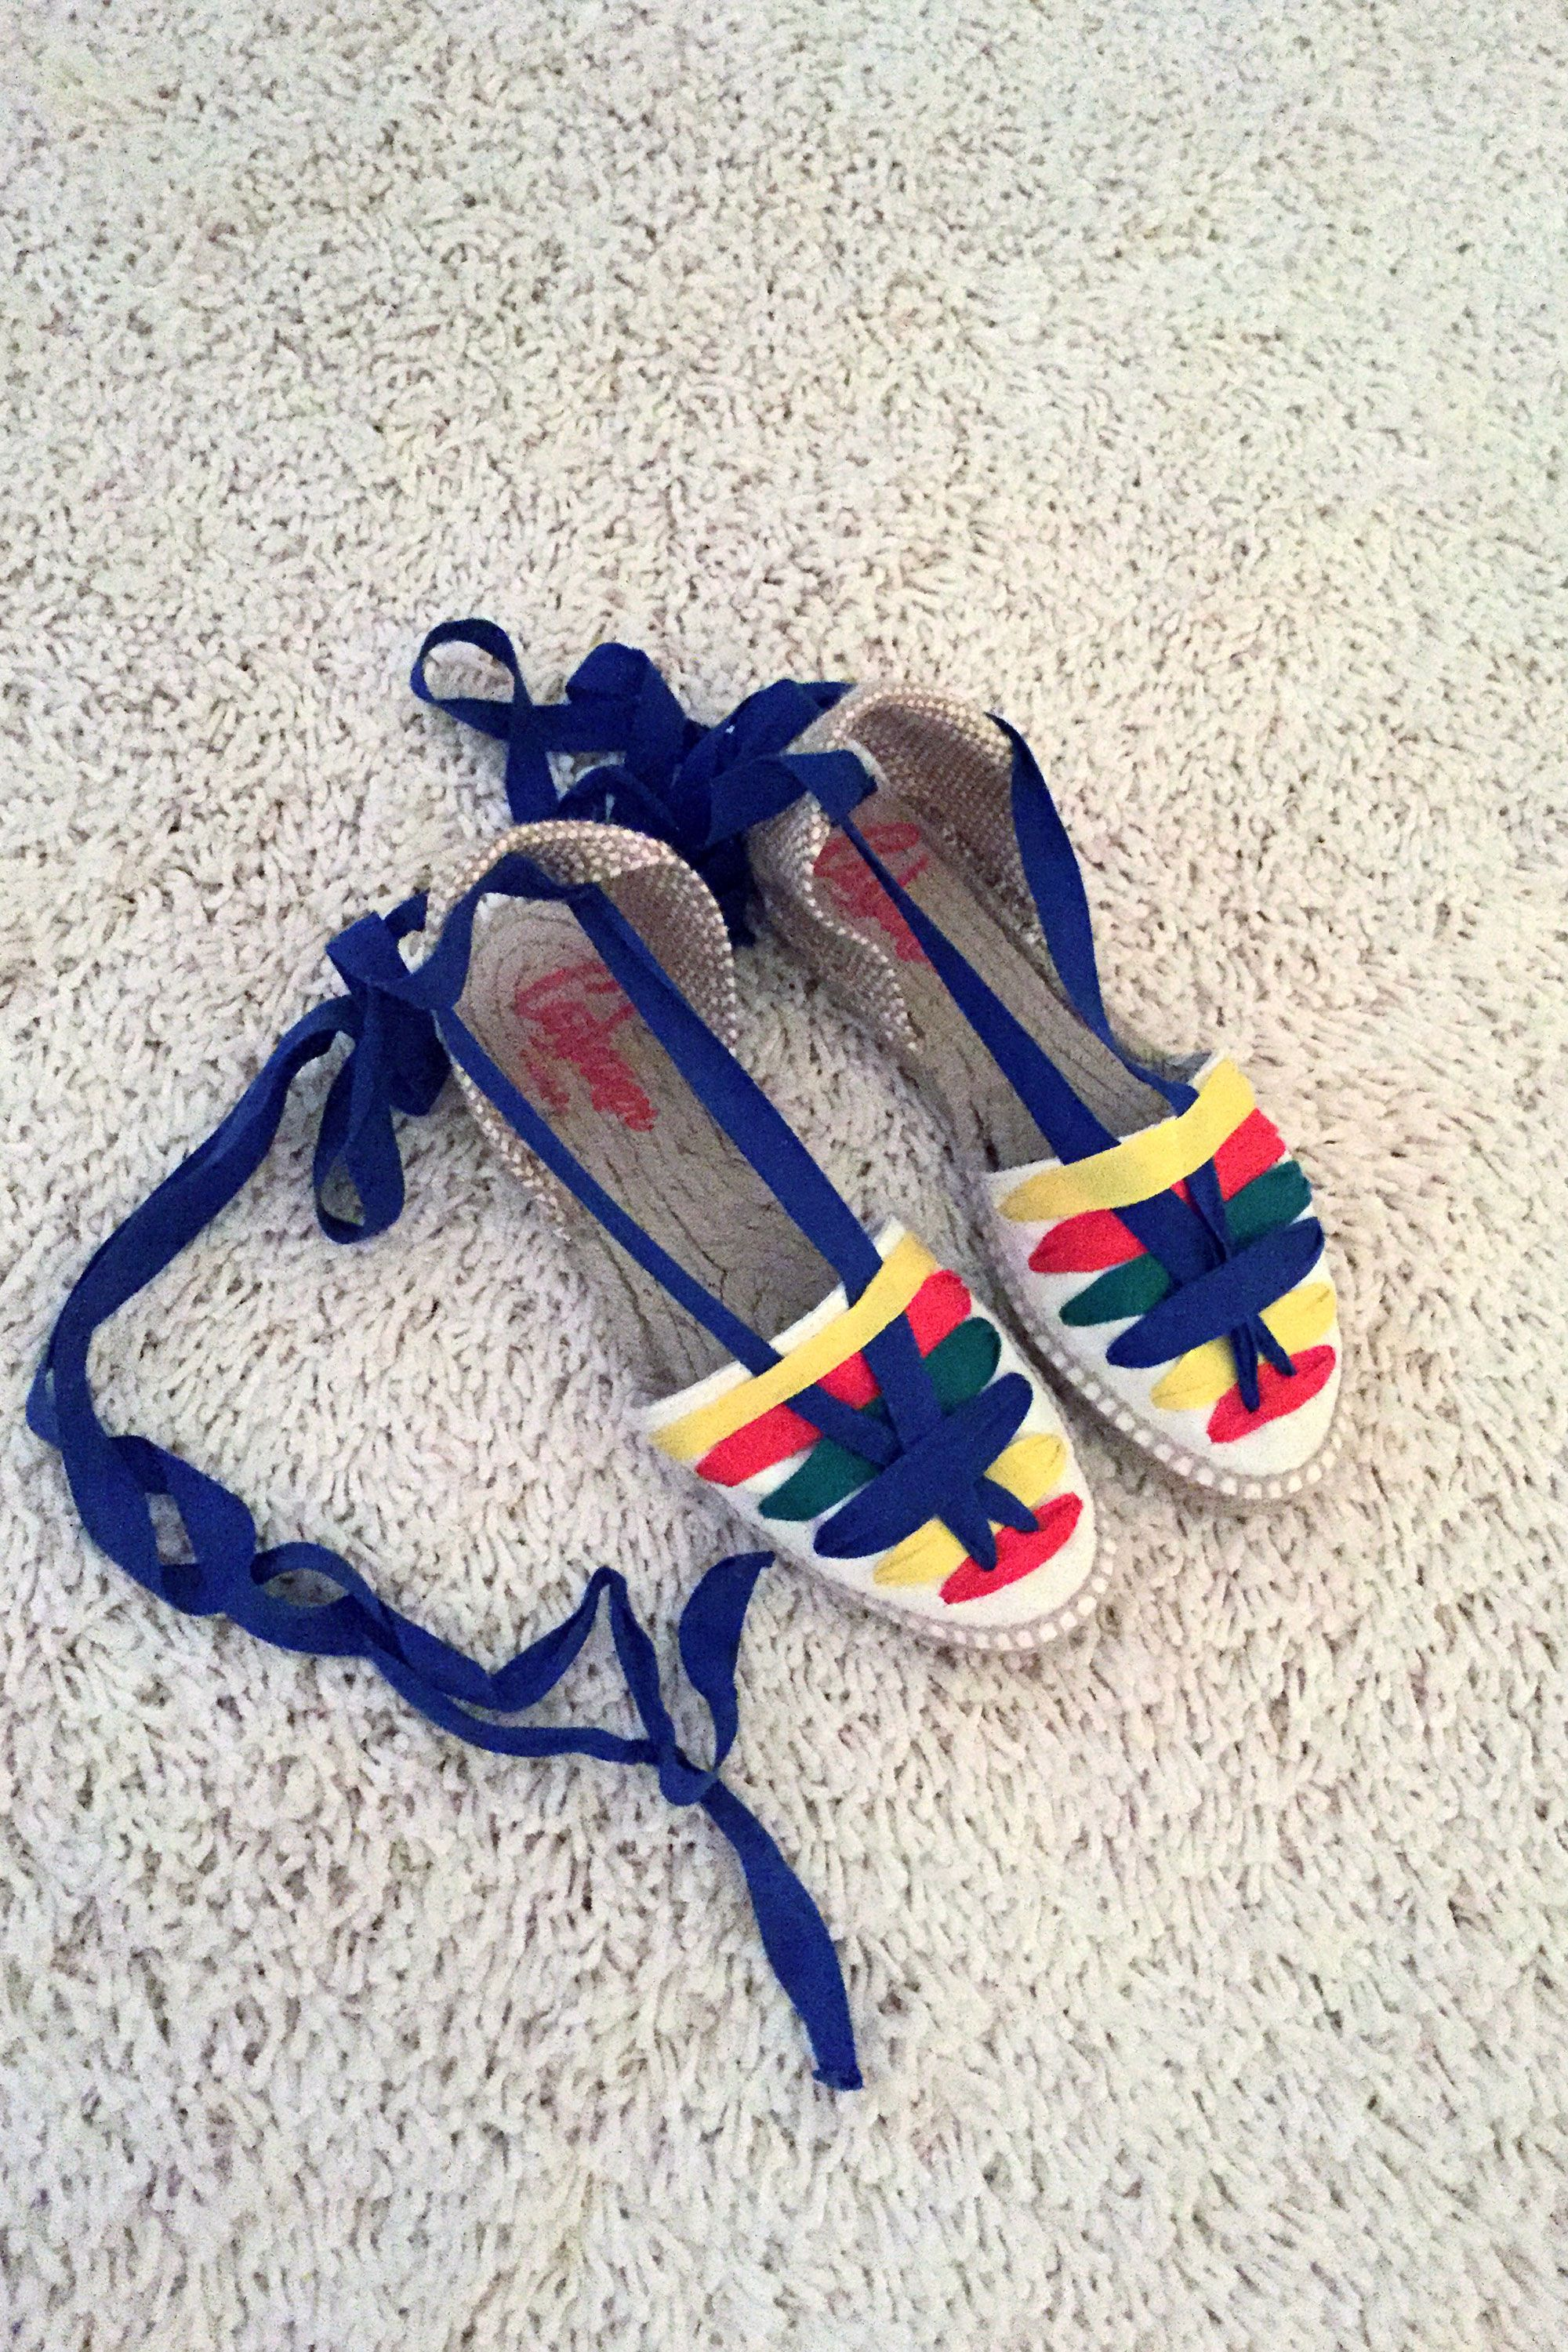 """<p>Although there is always a chance of rain at English festivals, I am being optimistic and pack these Castaner Espadrilles as they are so colorful and feel like the perfect summer festival shoes.</p><p><strong>Castaner</strong> espadrilles, <a href=""""http://www.castaner.com/en-us/shop/woman/espadrilles-1"""" target=""""_blank"""">castaner.com</a>.<br></p>"""